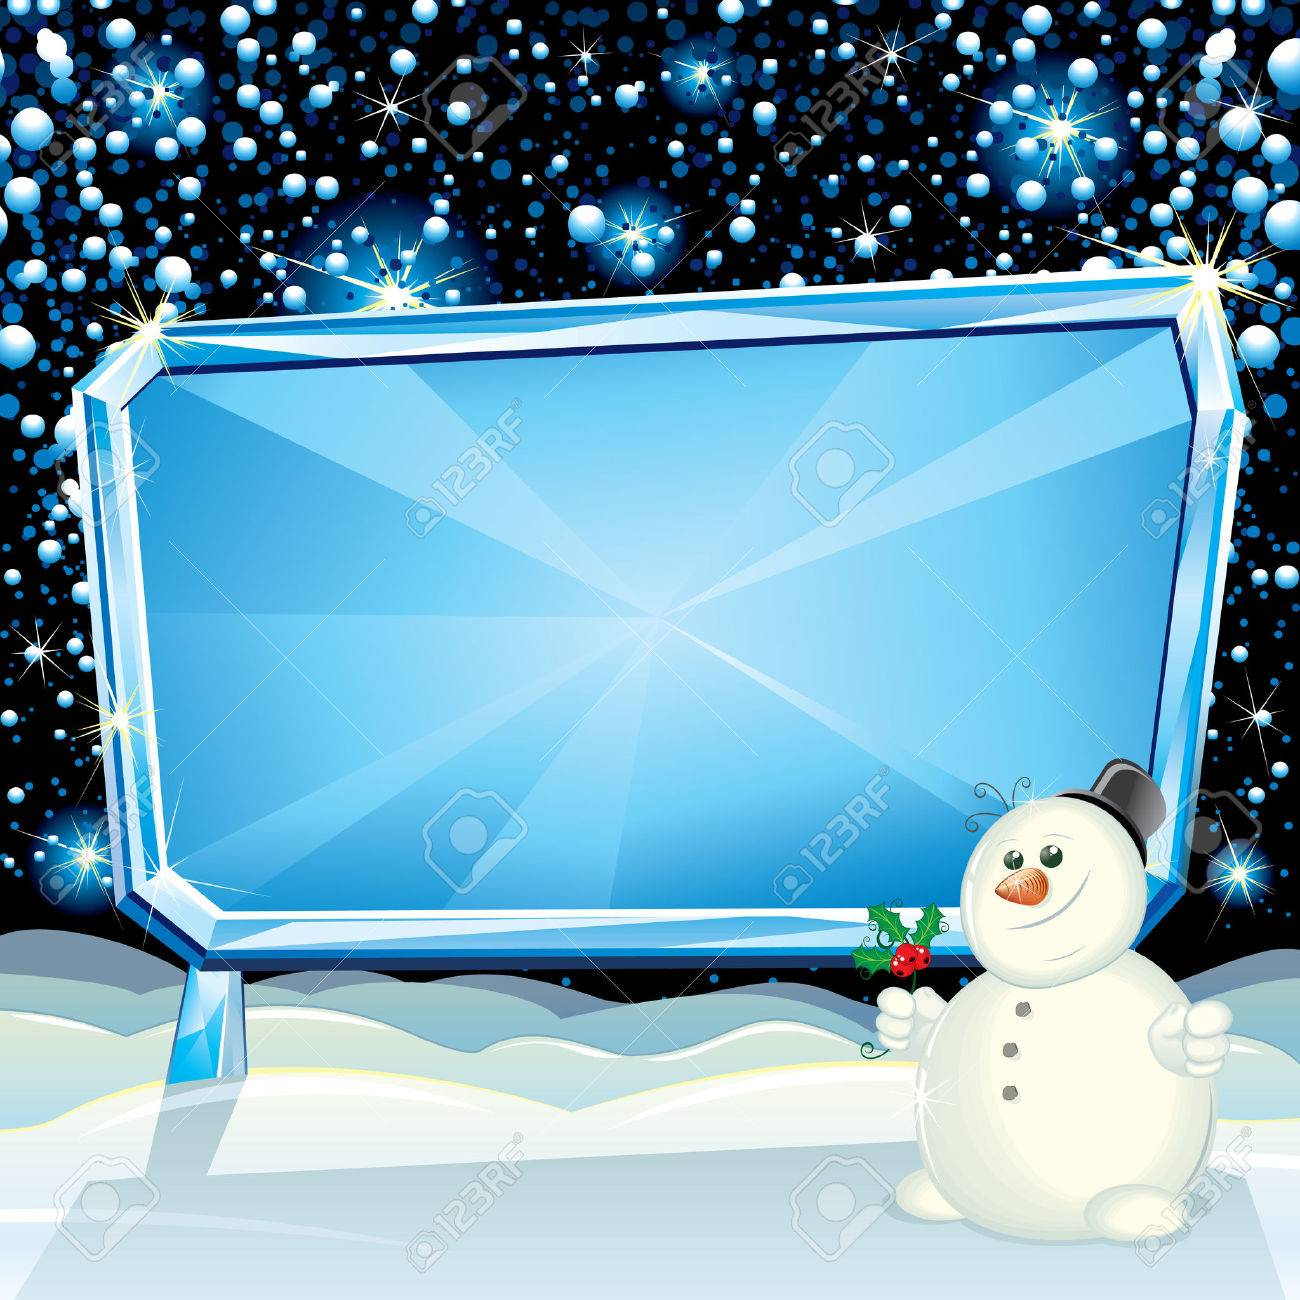 Cartoon Christmas Card with Frozen Billboard and Funny Snowman ready for greeting text Stock Vector - 8186168